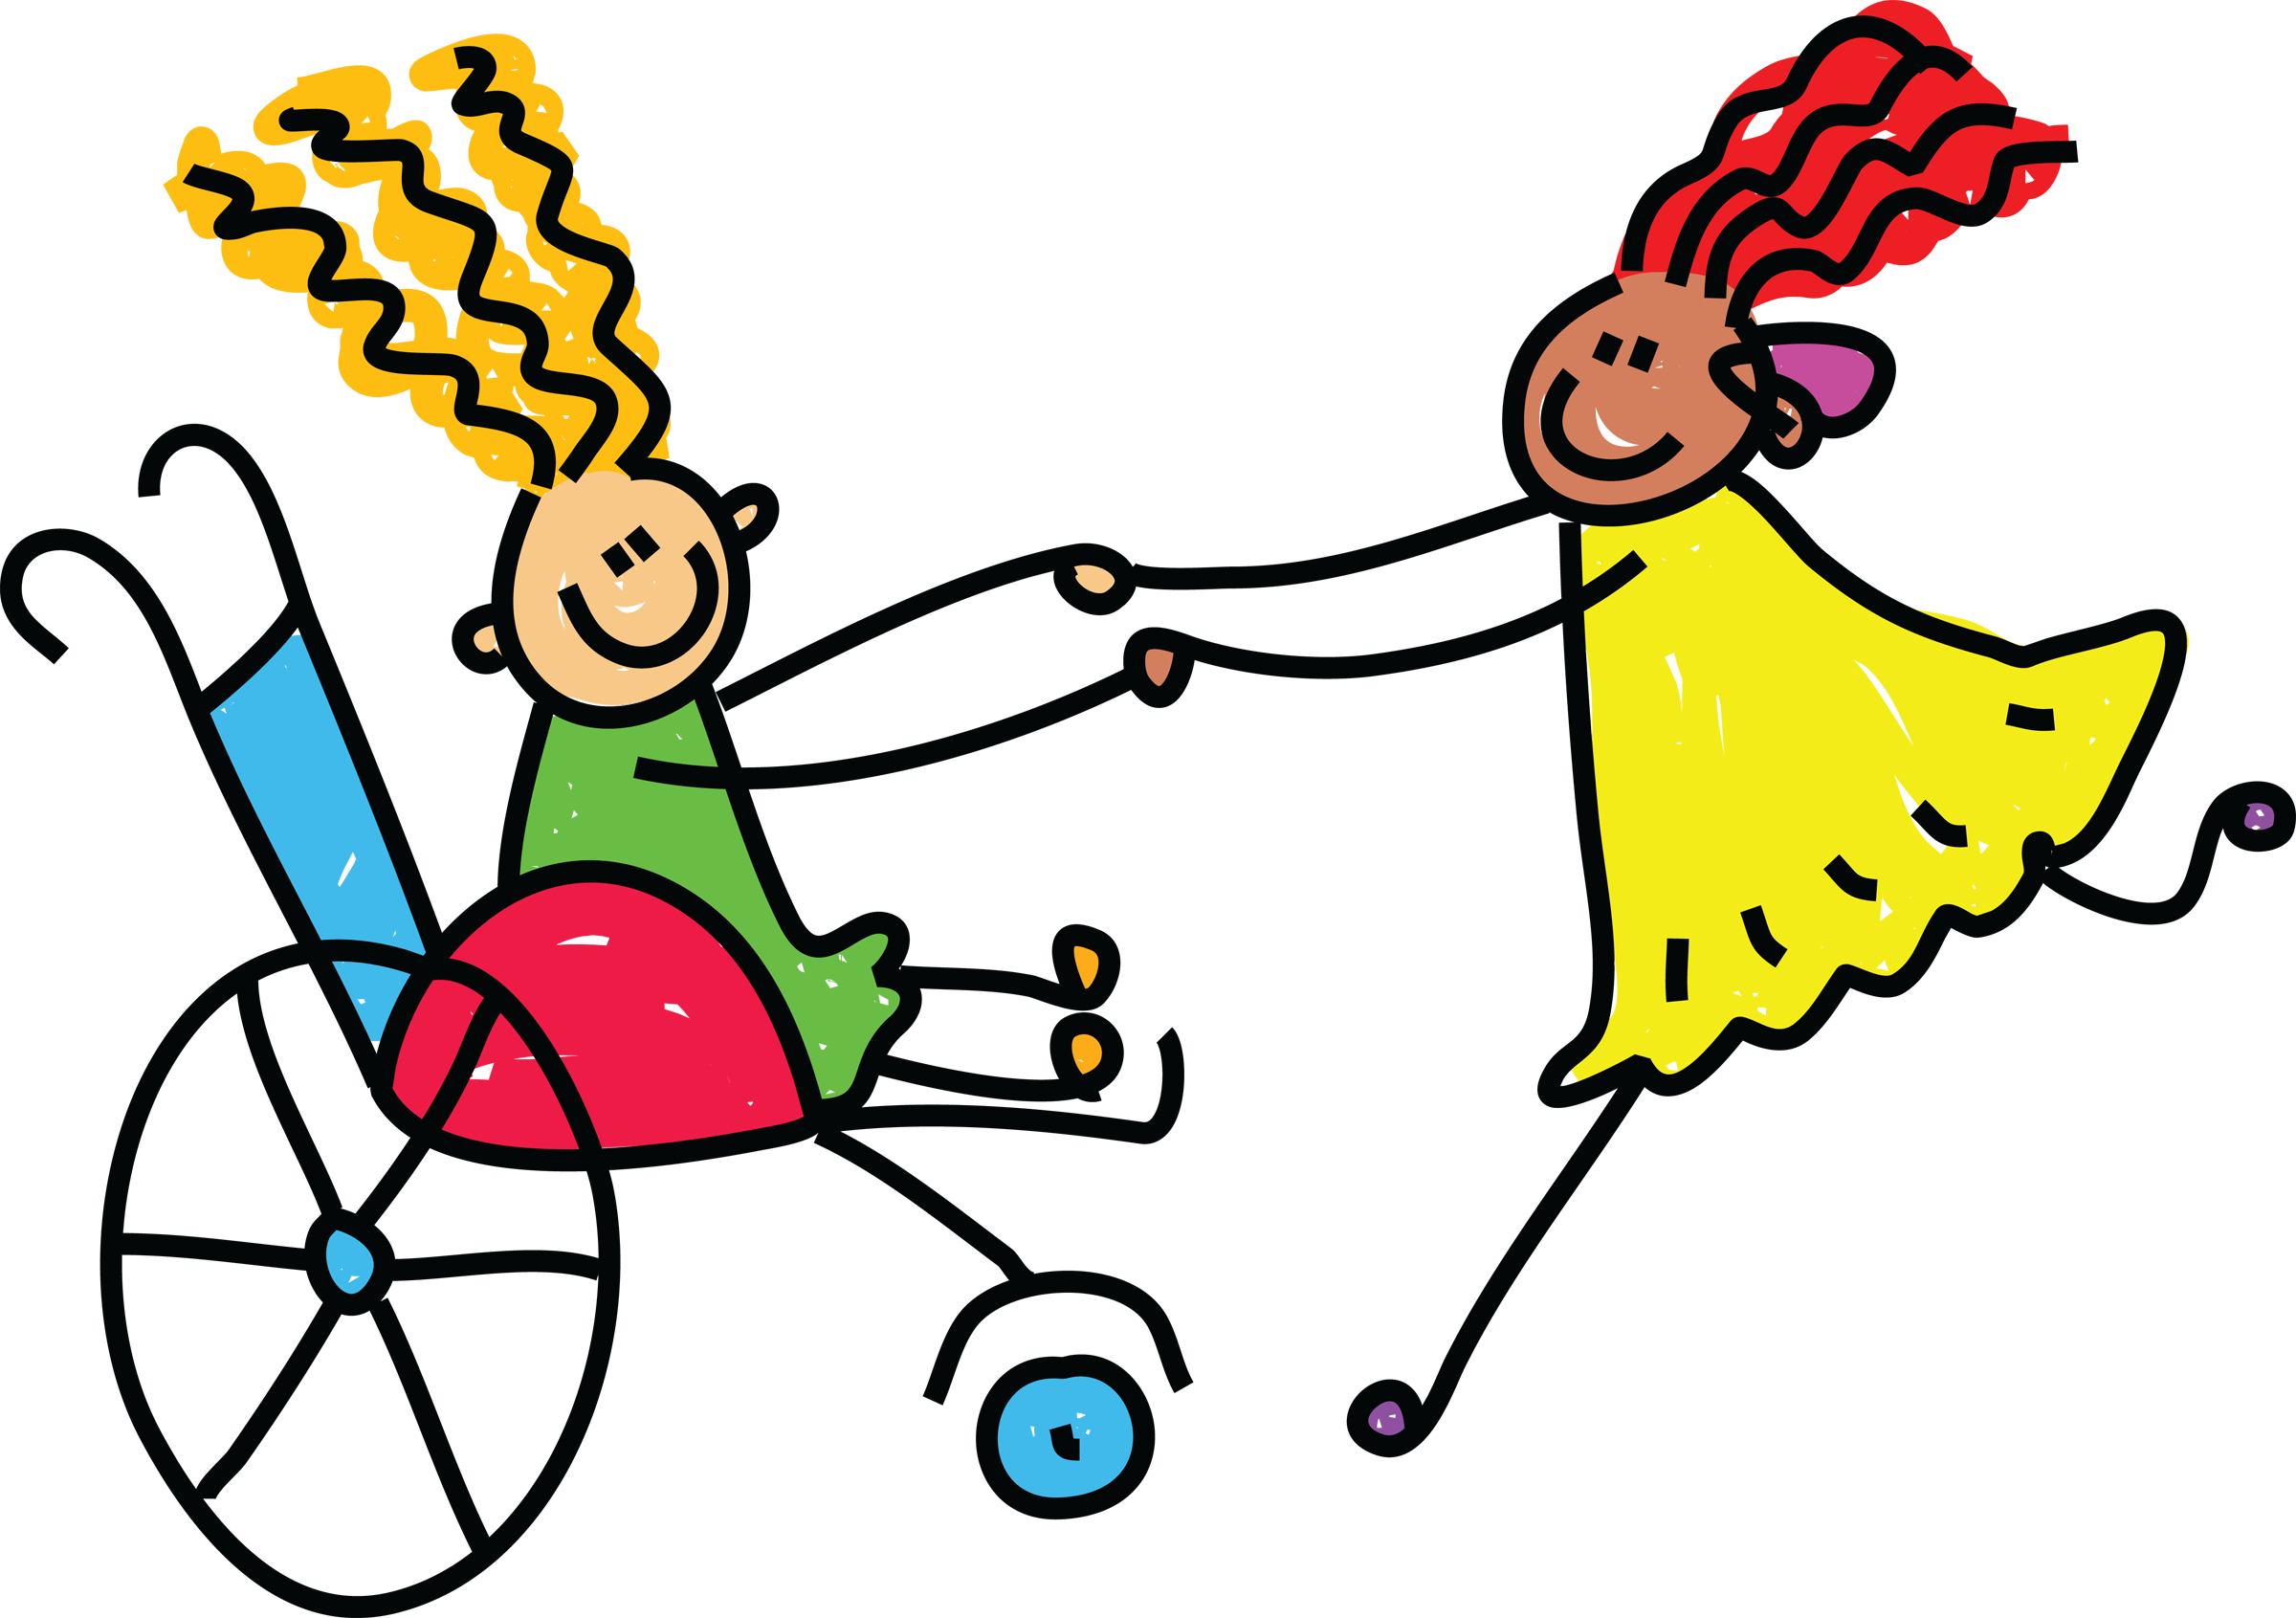 Faith clipart whimsical. Inclusion is not a